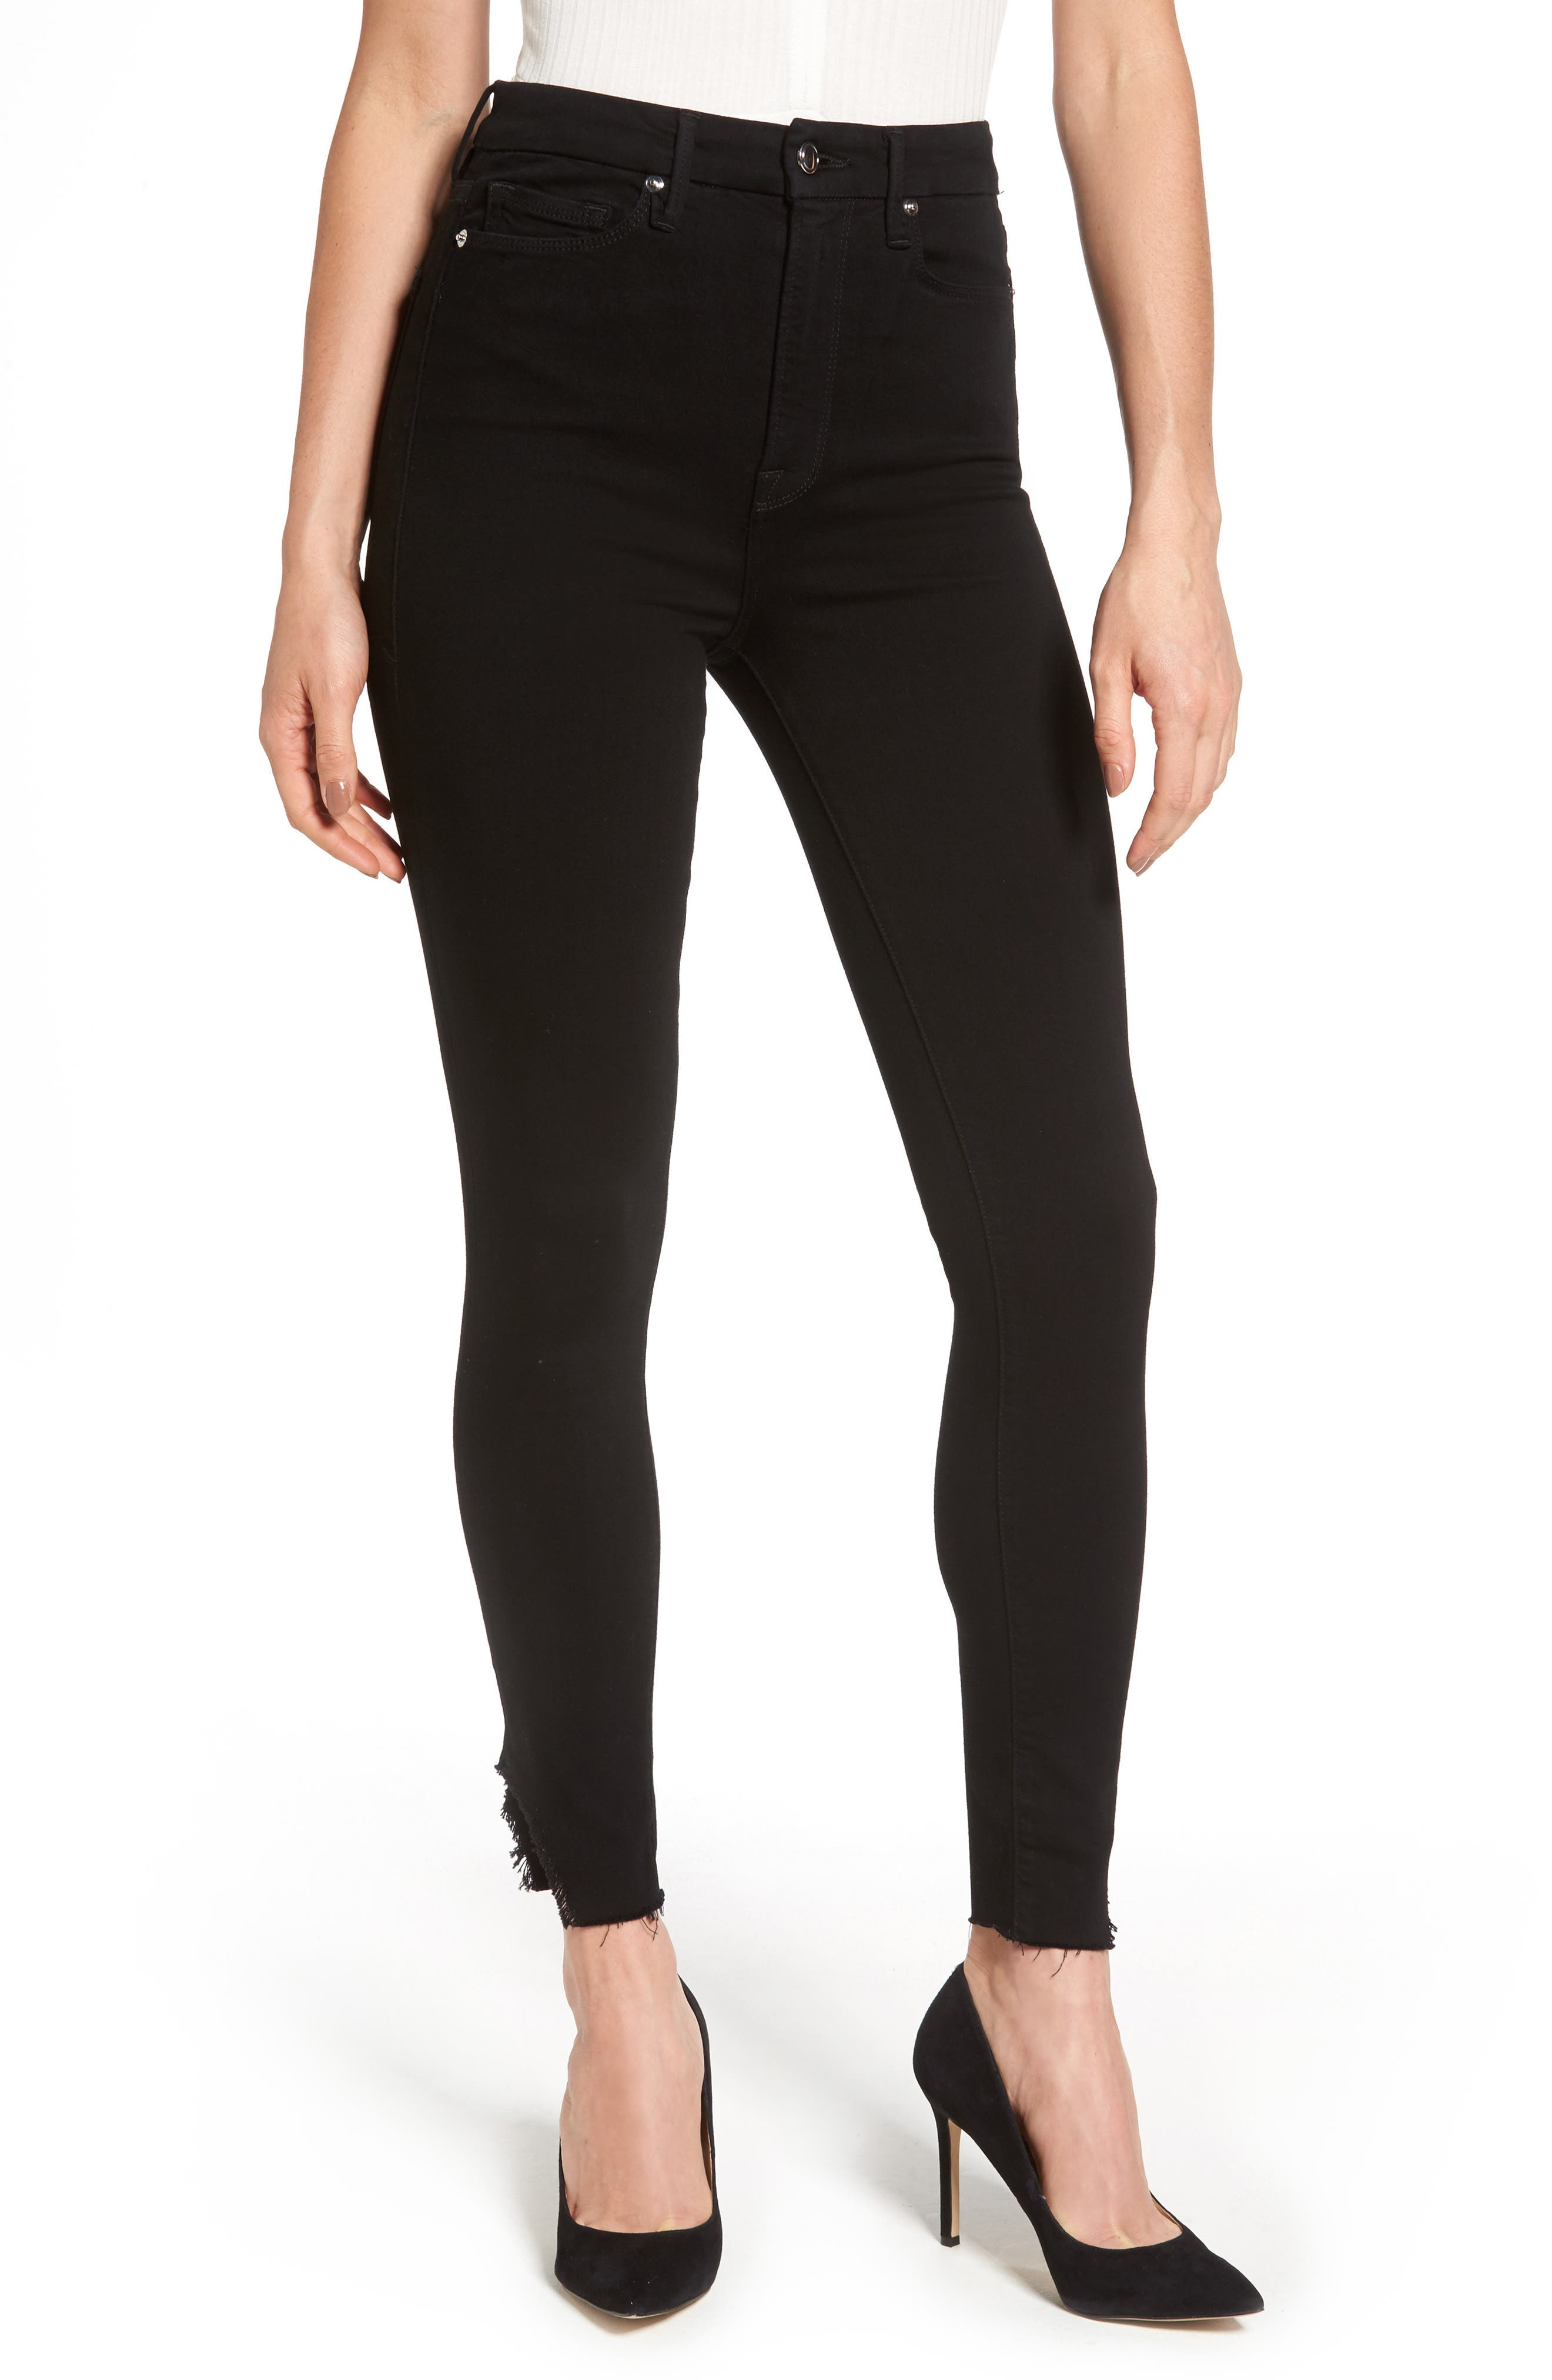 Main Image - Good American Good Waist Side Triangle Skinny Jeans (Black 001) (Extended Sizes)